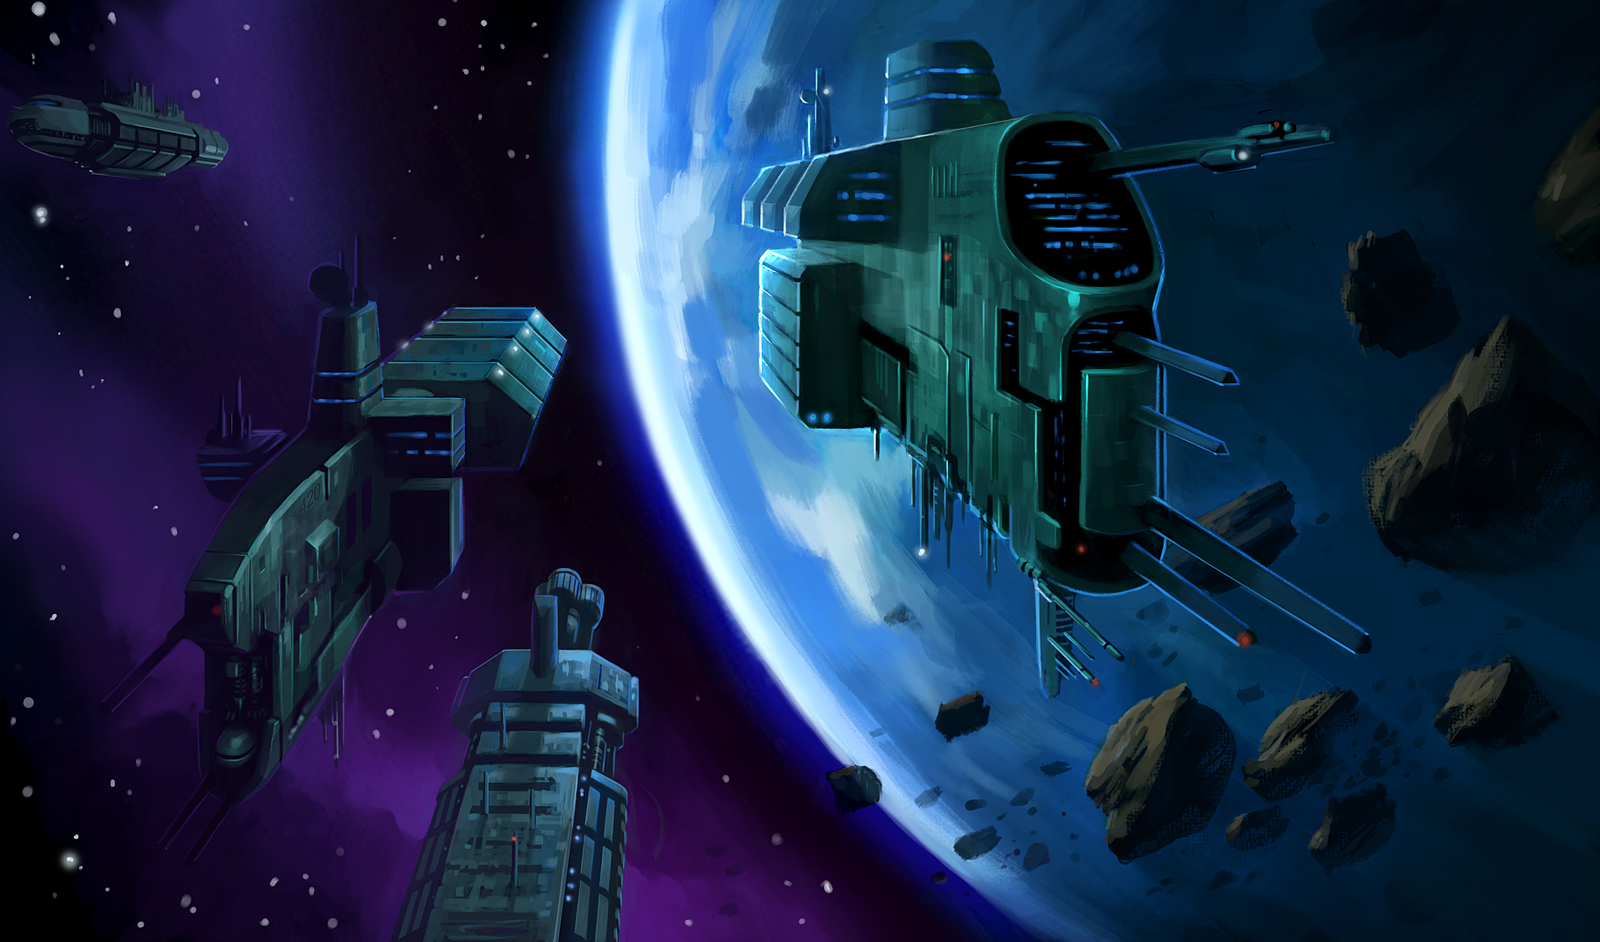 http://images1.wikia.nocookie.net/__cb20120405154433/starcraft/images/3/38/Supercarriers_SC2_Art1.jpg